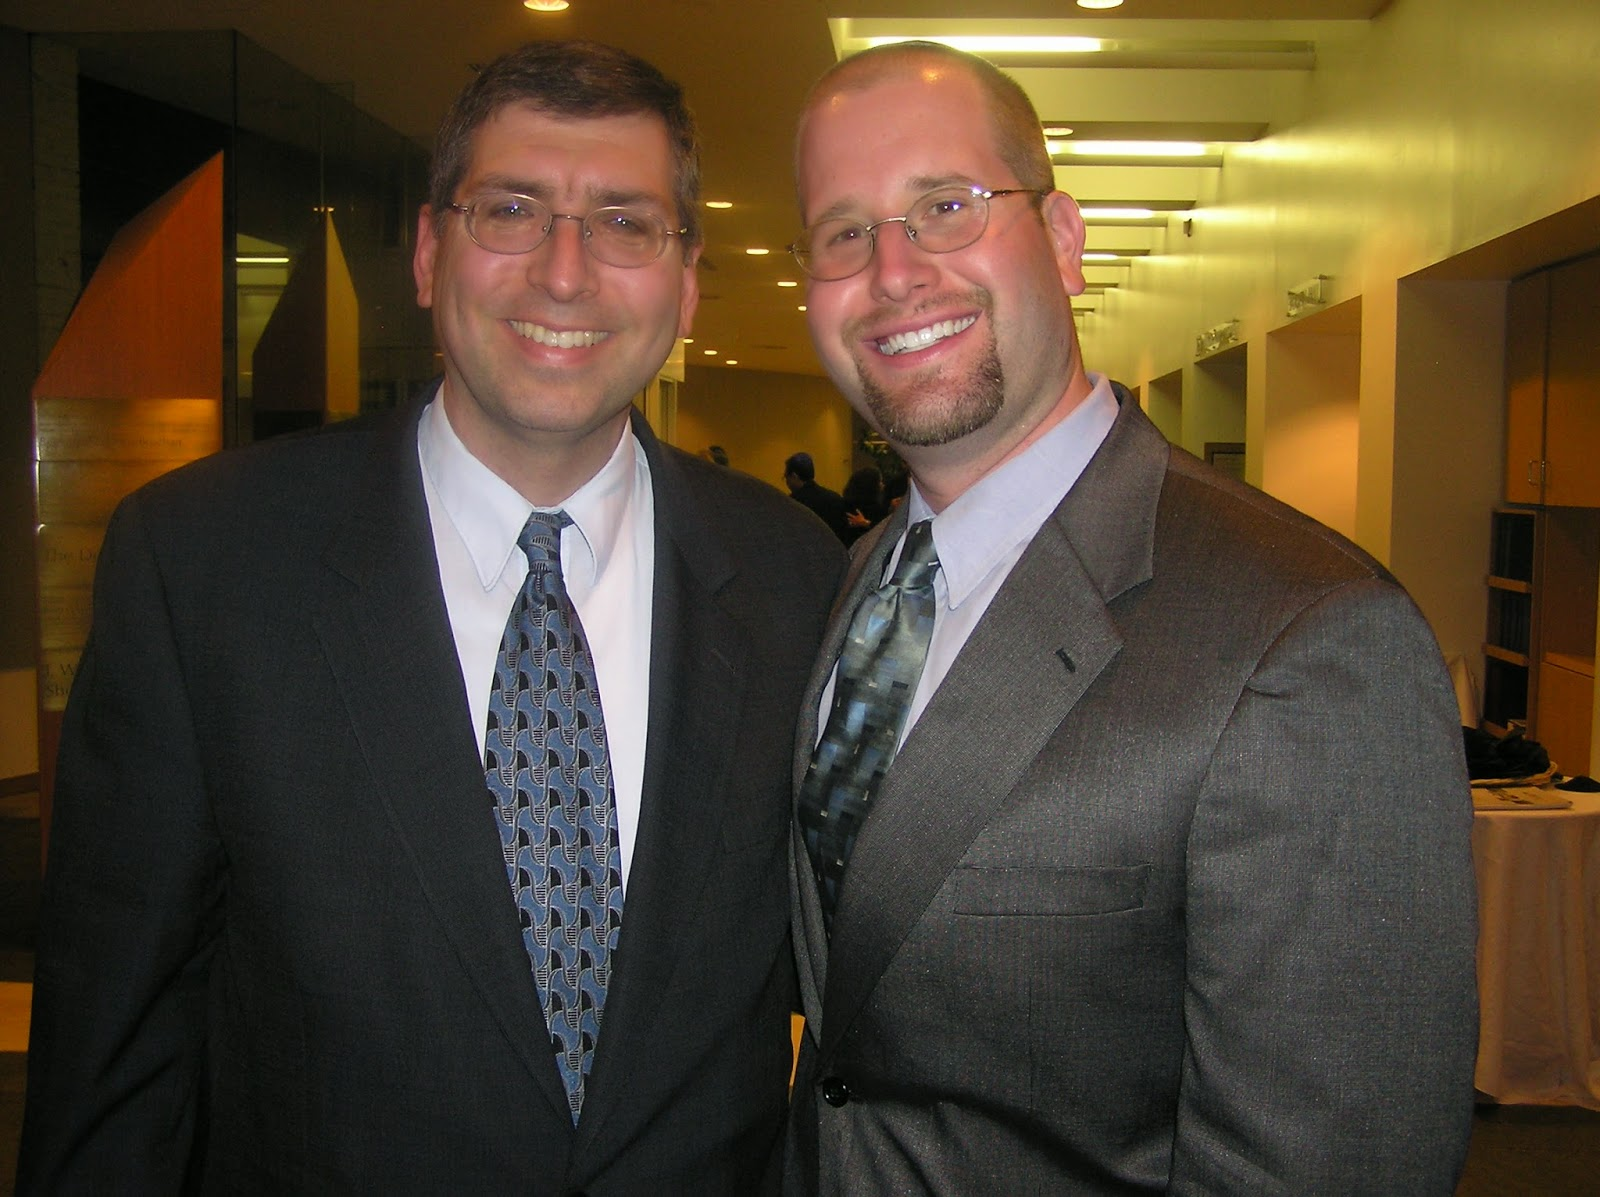 Rabbi Elliot Pachter will throw out the first pitch at the Detroit Tigers game